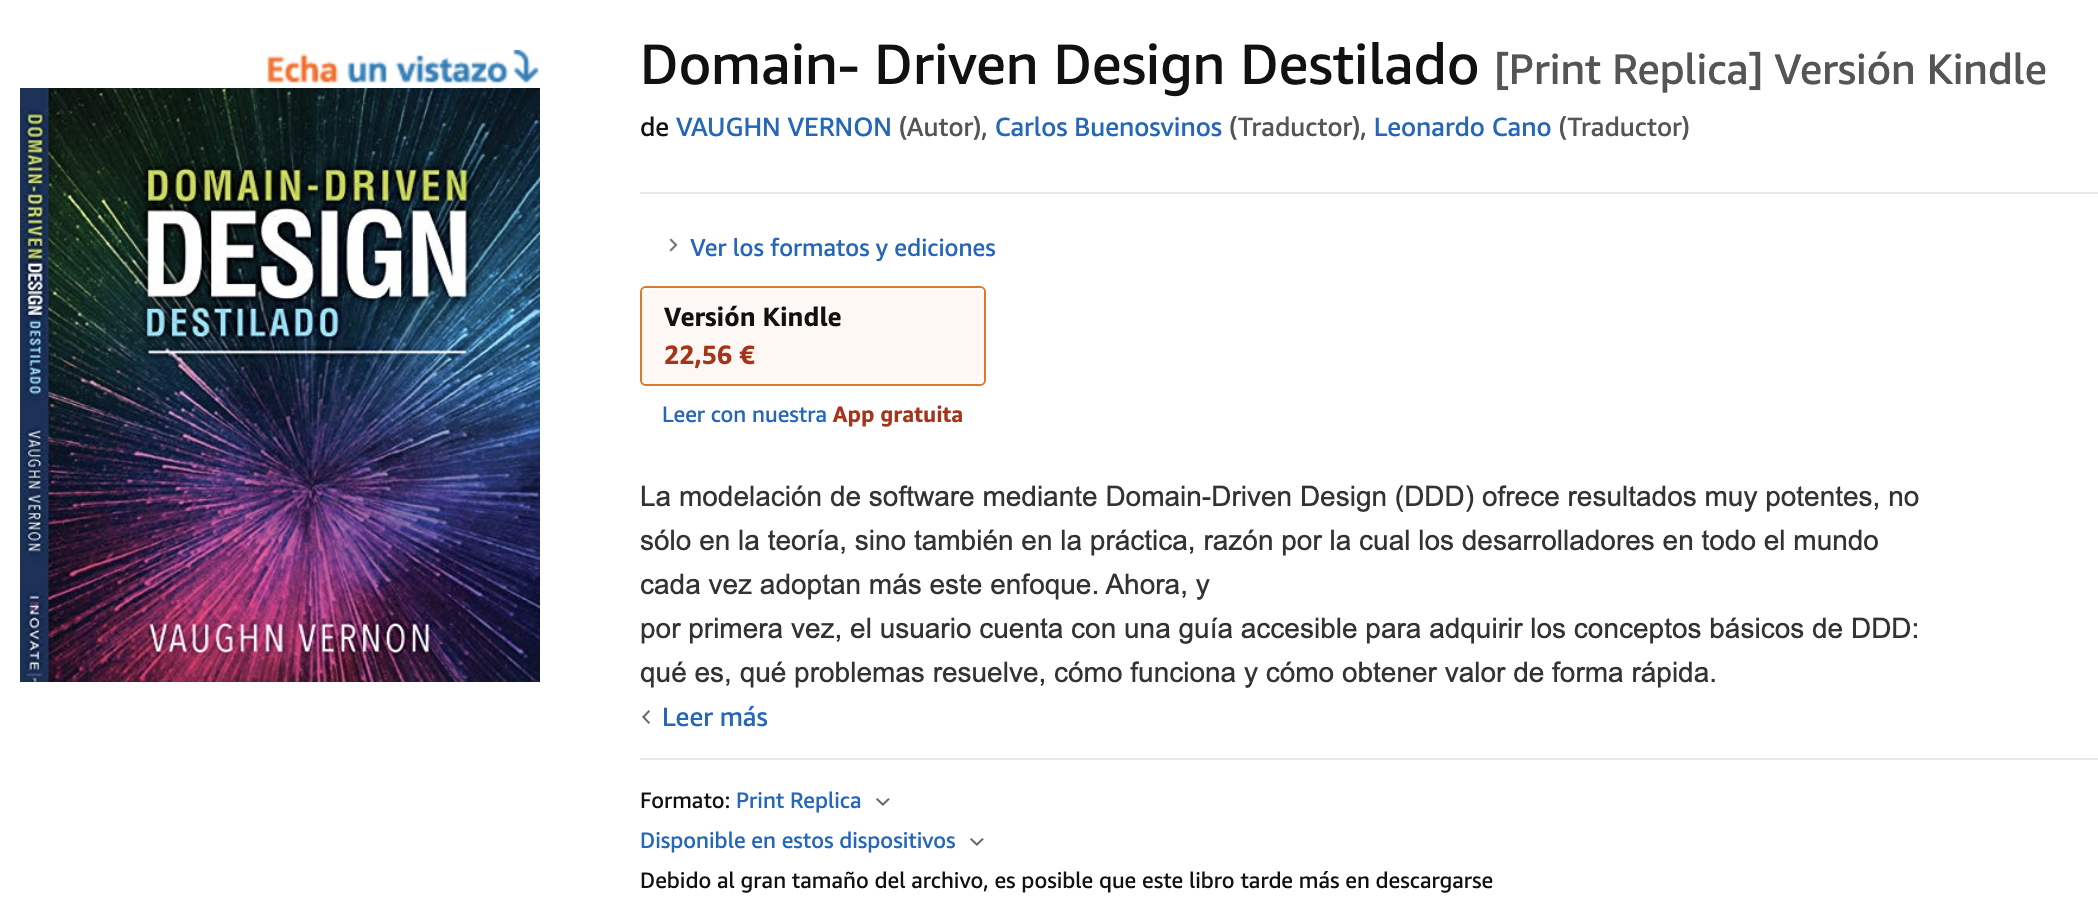 image from Domain-Driven Design Destilado